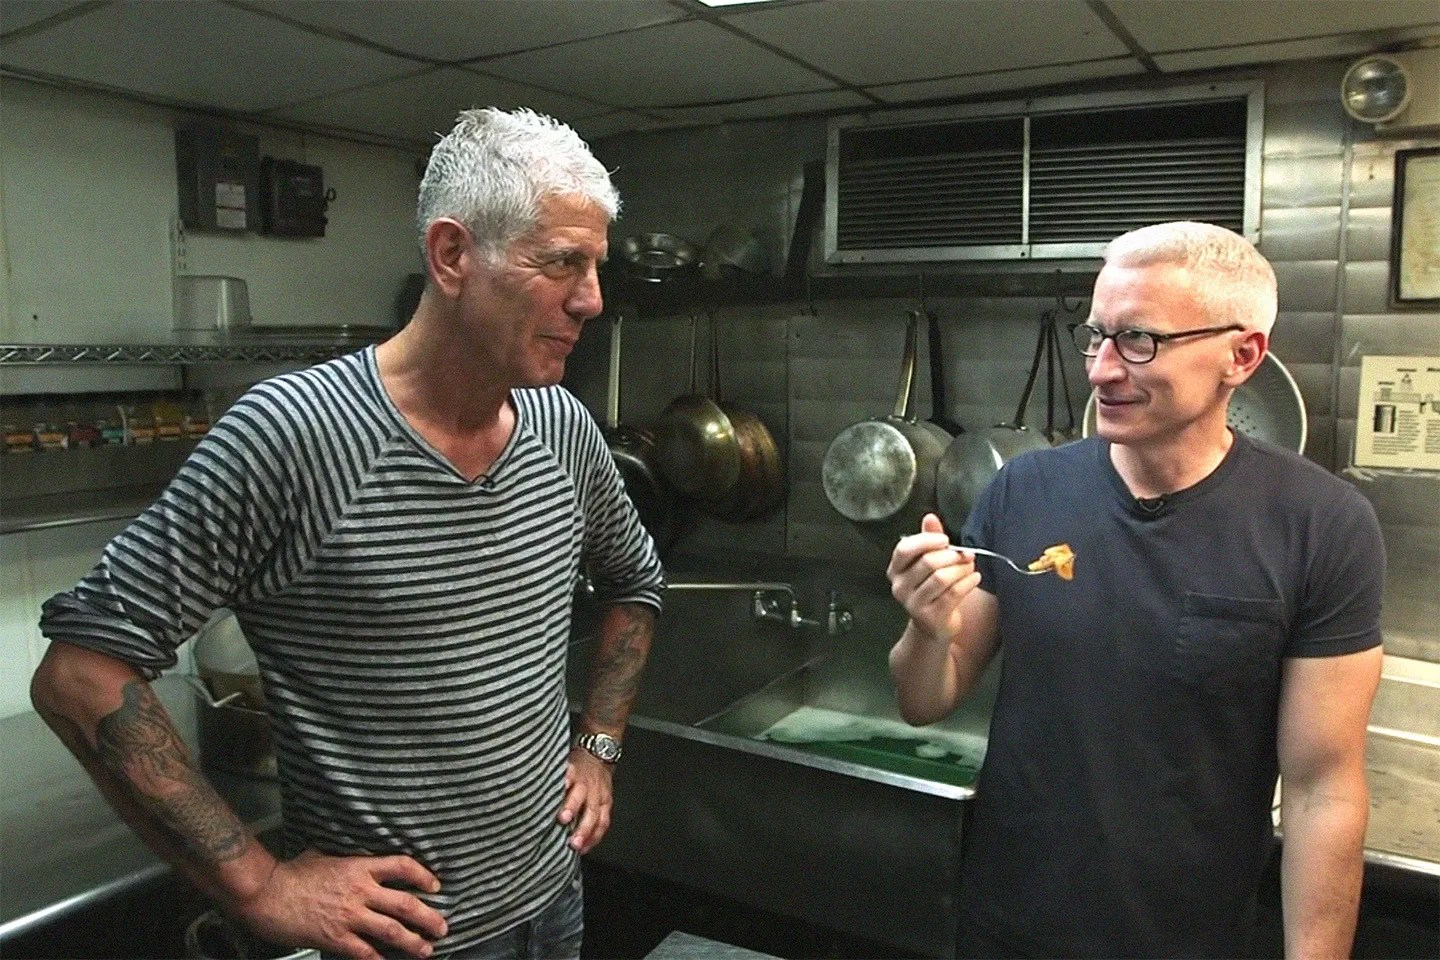 Anthony Bourdain Is on a Mission to Make Anderson Cooper